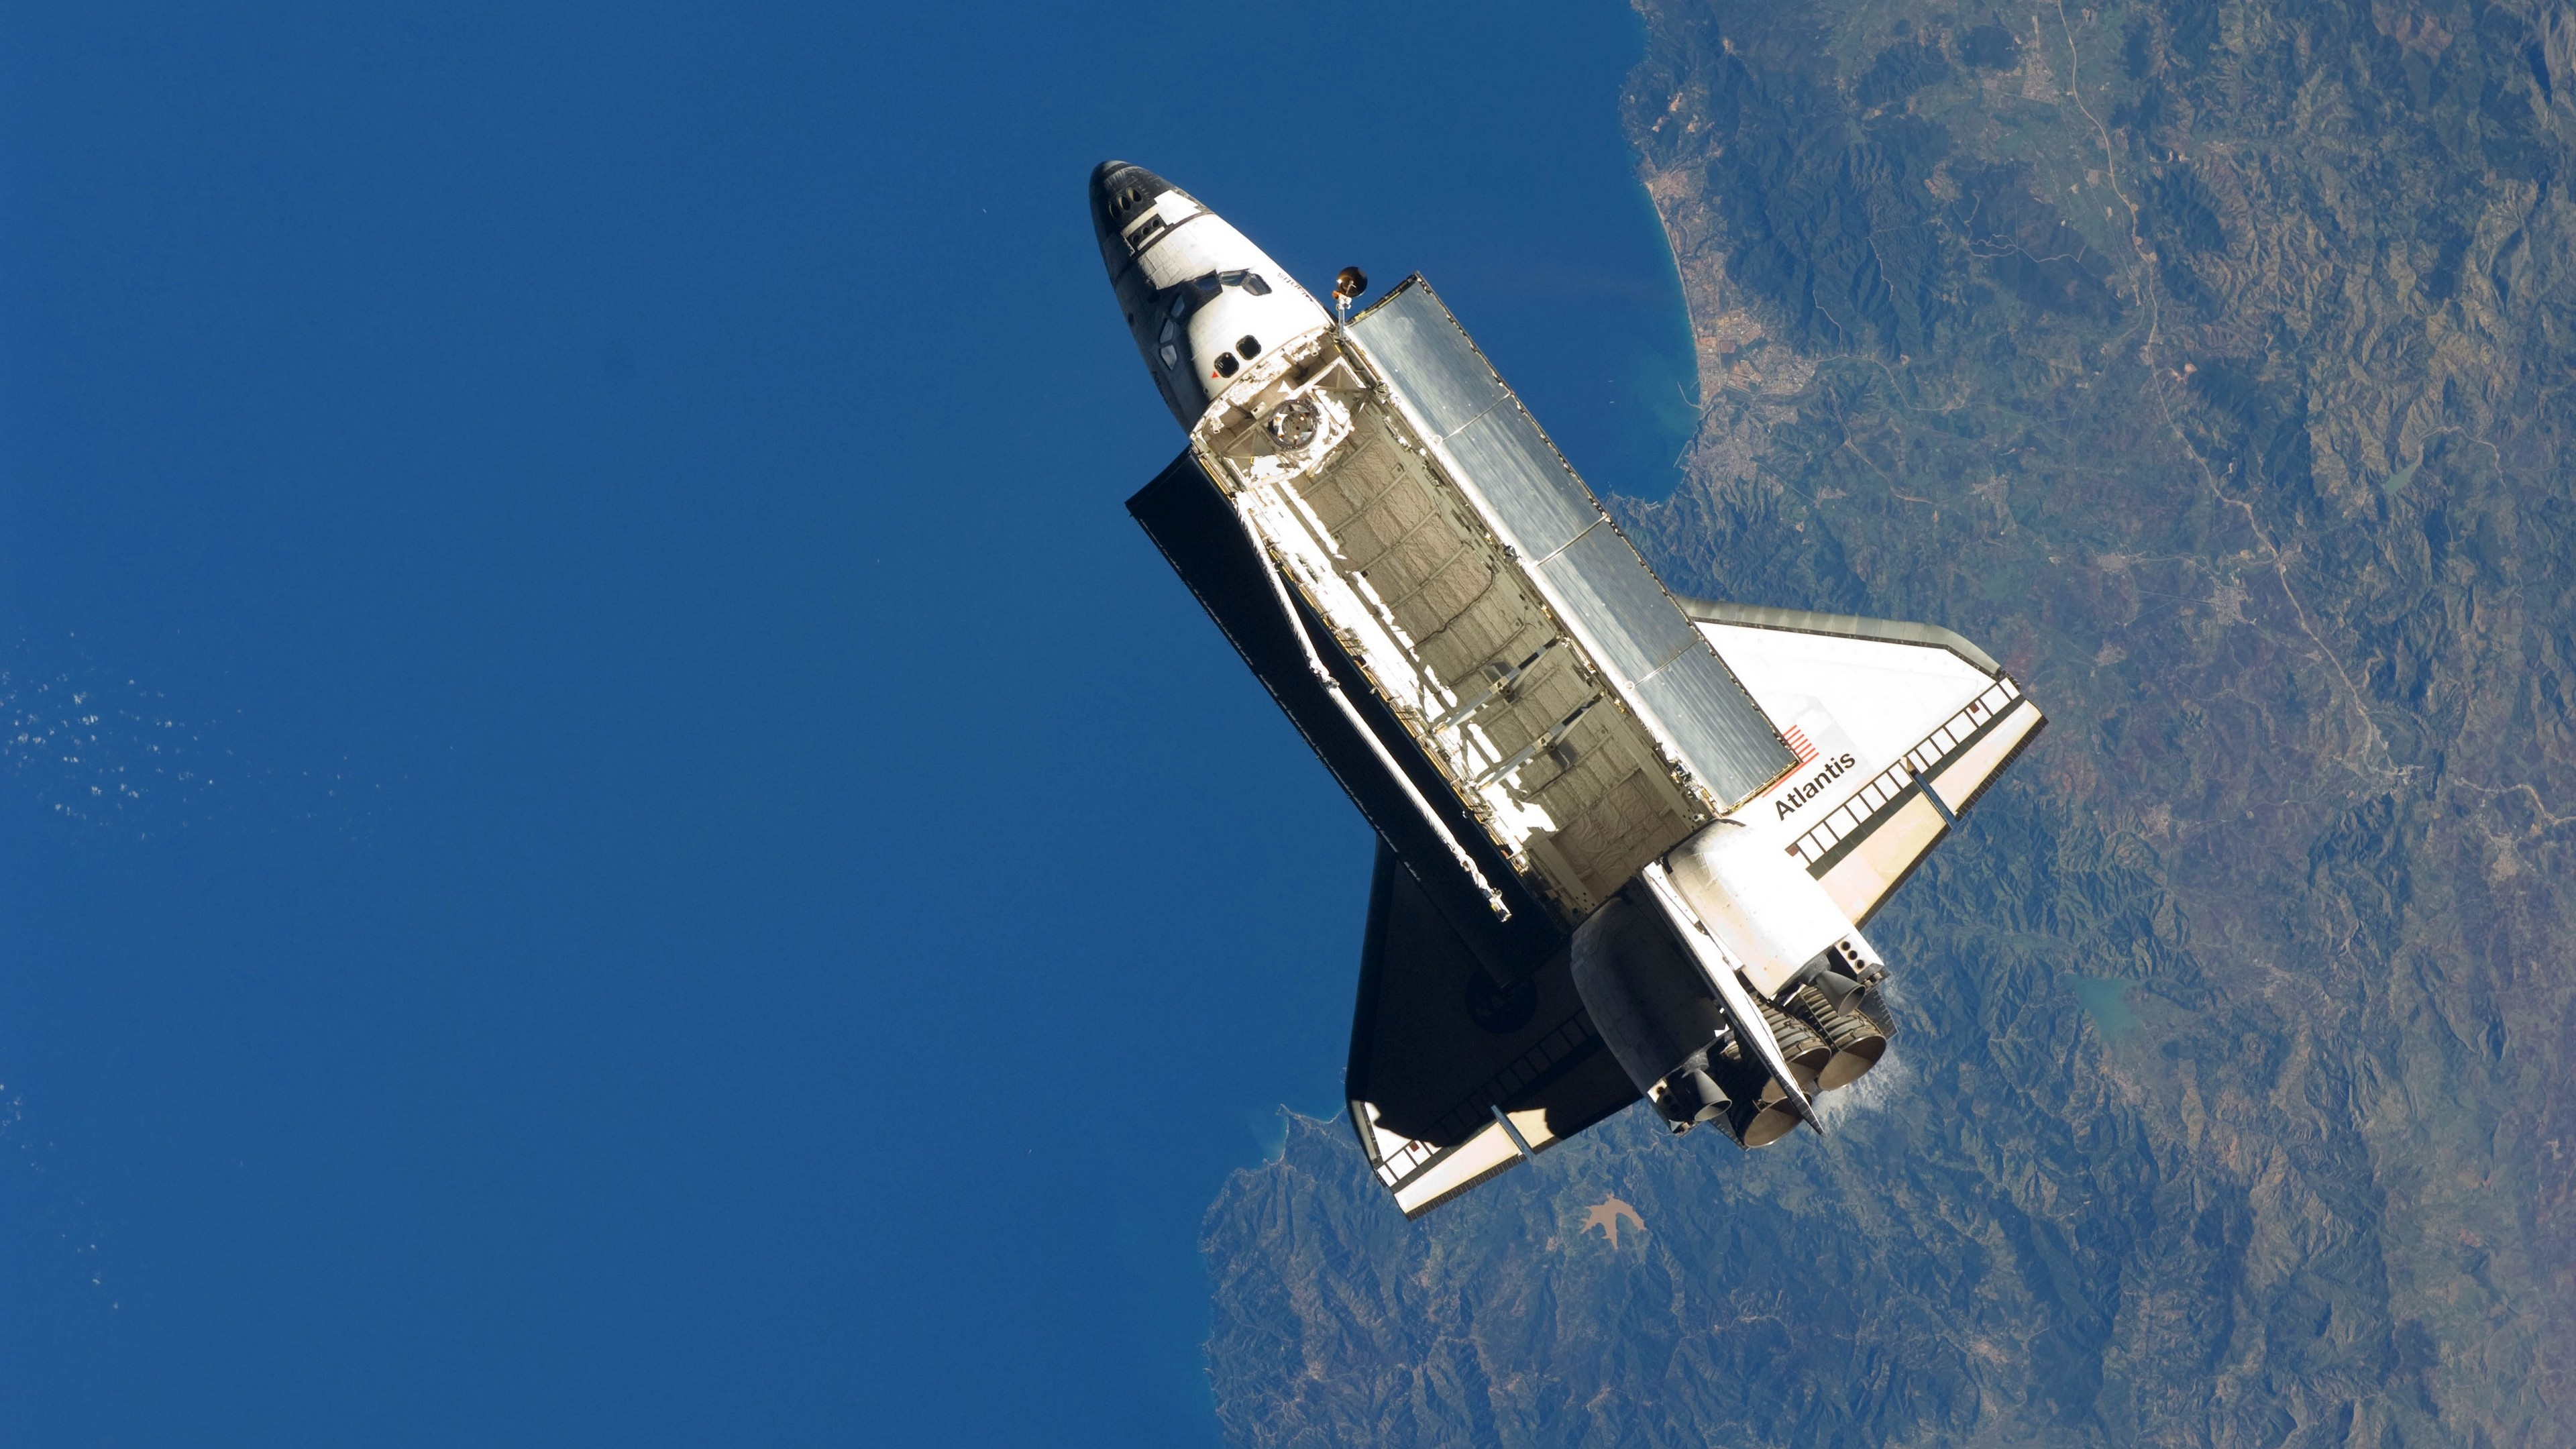 3840x2160 - Space Shuttle atlantis Wallpapers 28